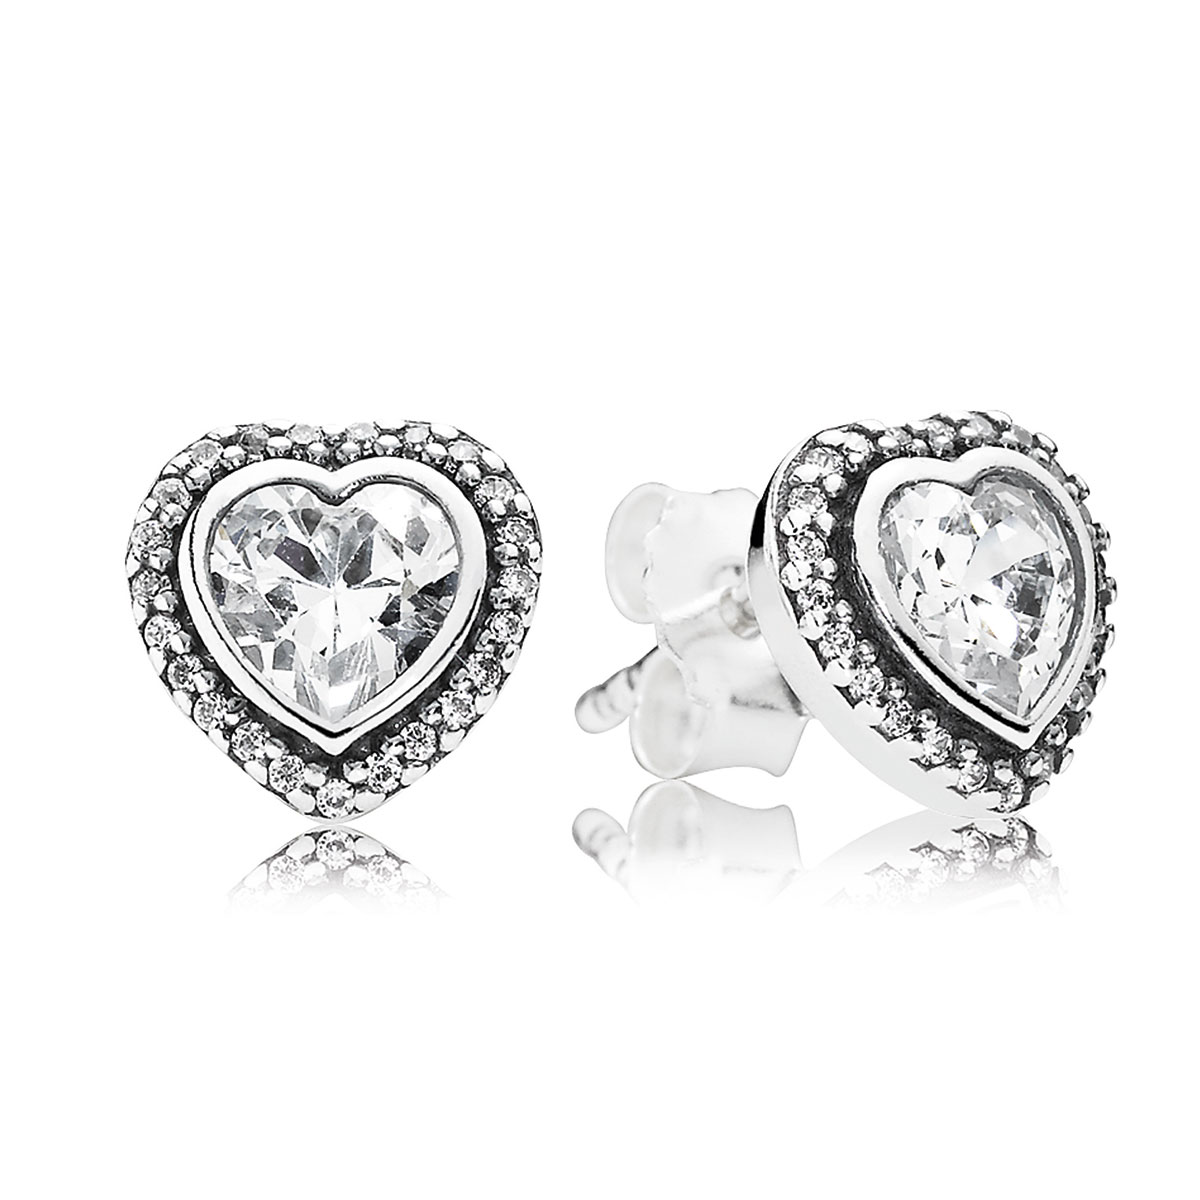 804-390-PANDORA Sparkling Love with Clear CZ Stud Earrings